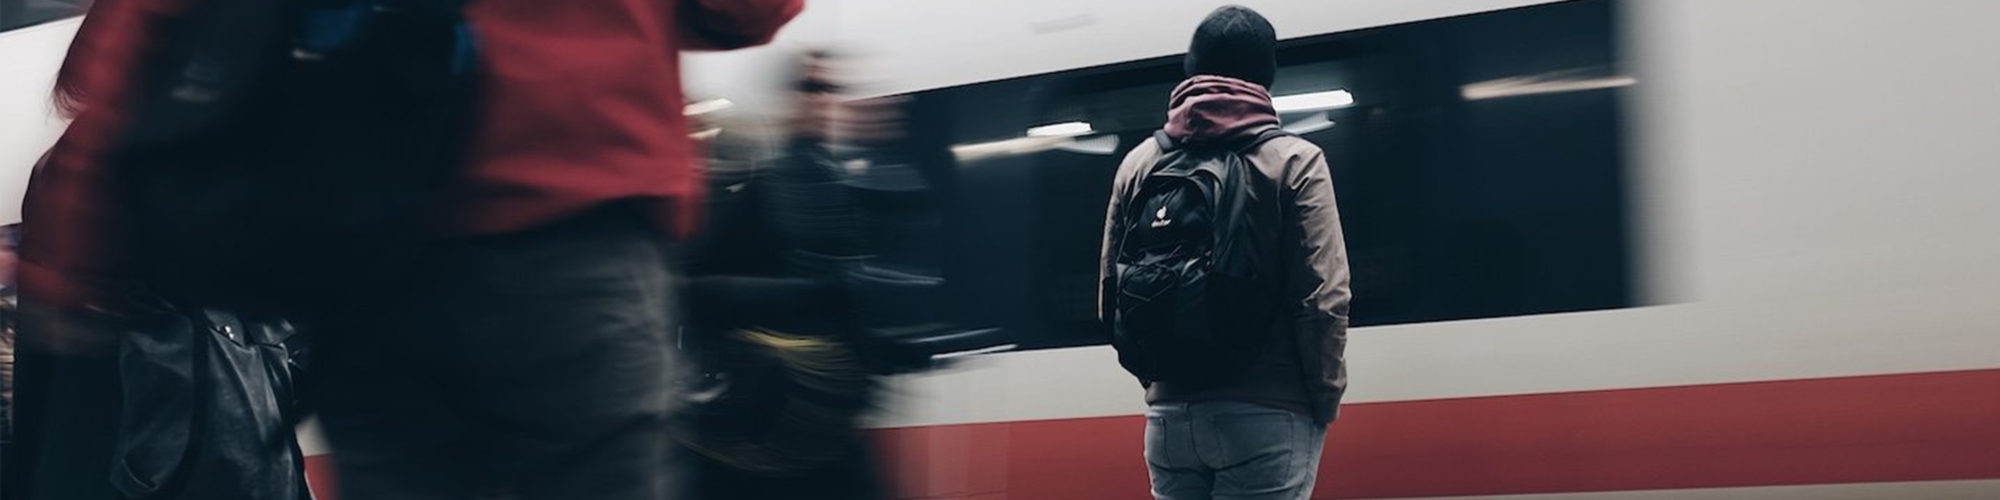 Picture of a waiting passenger on the train platform, valantic Case Study Siemens AG